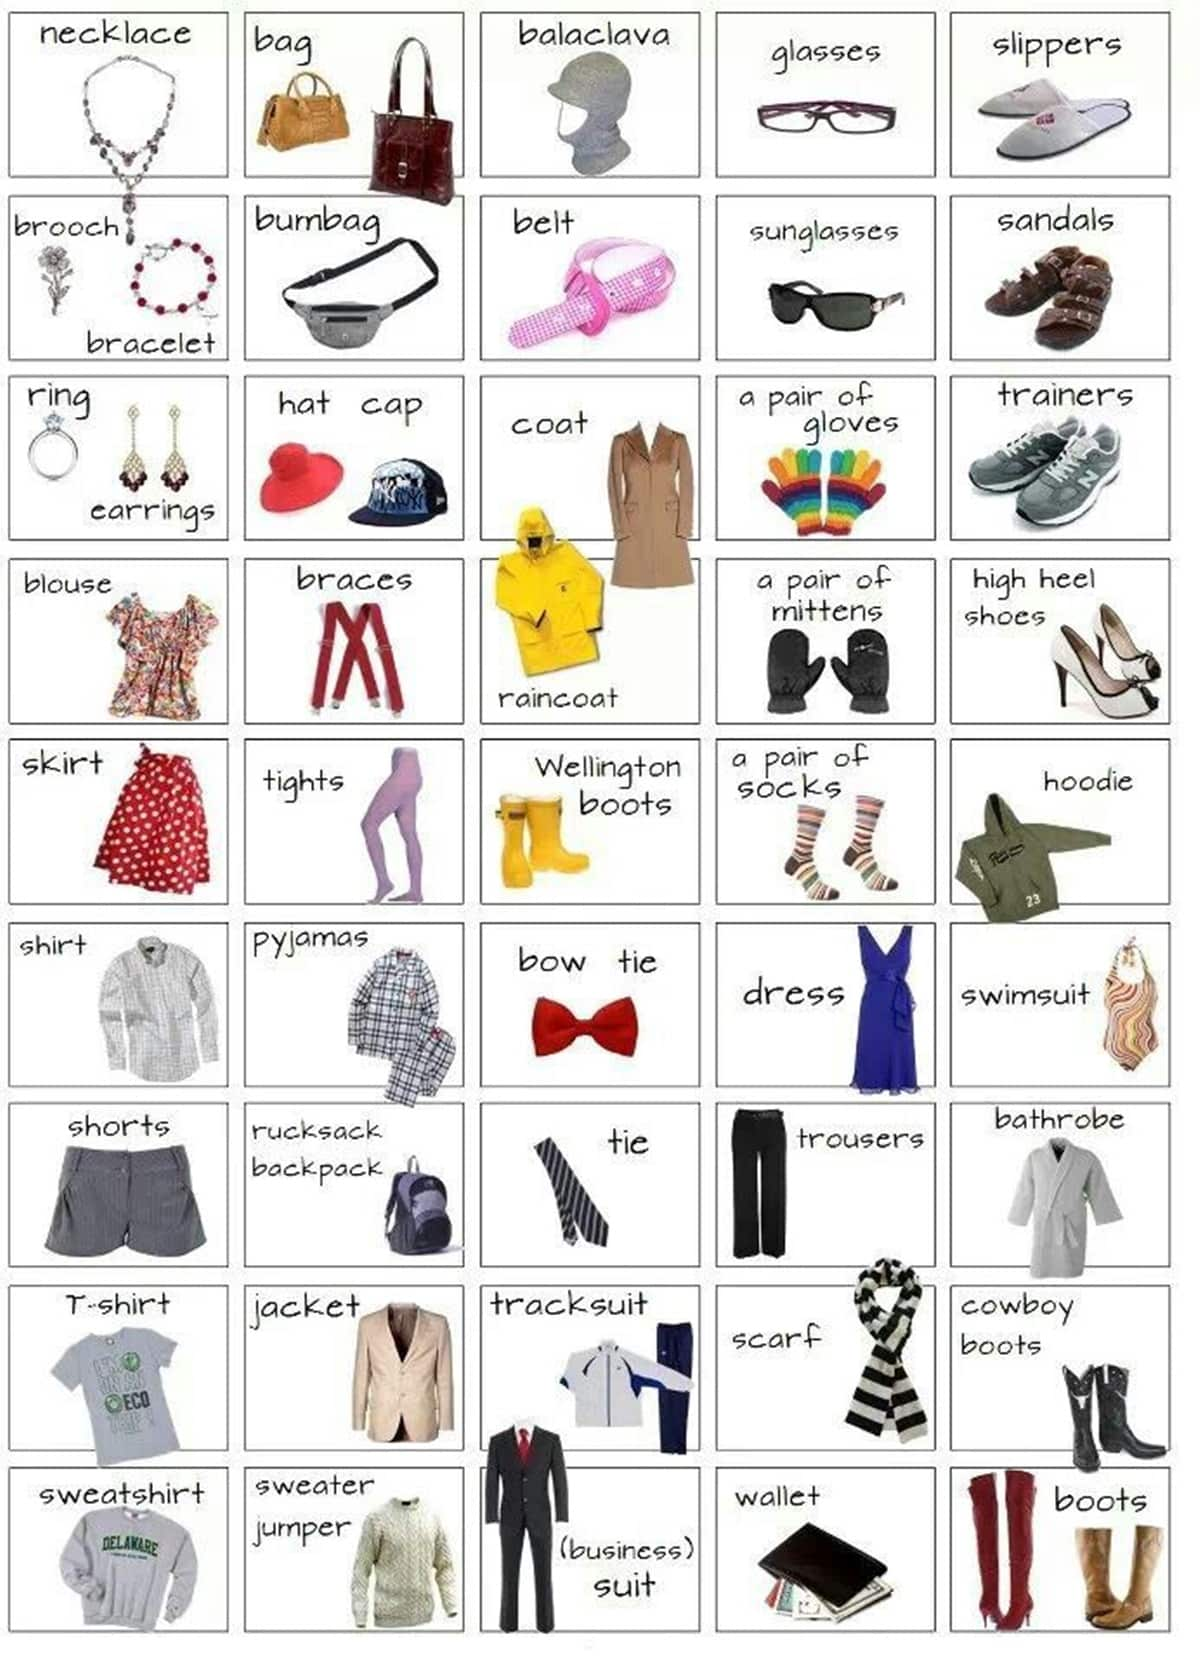 Clothes and Accessories Vocabulary